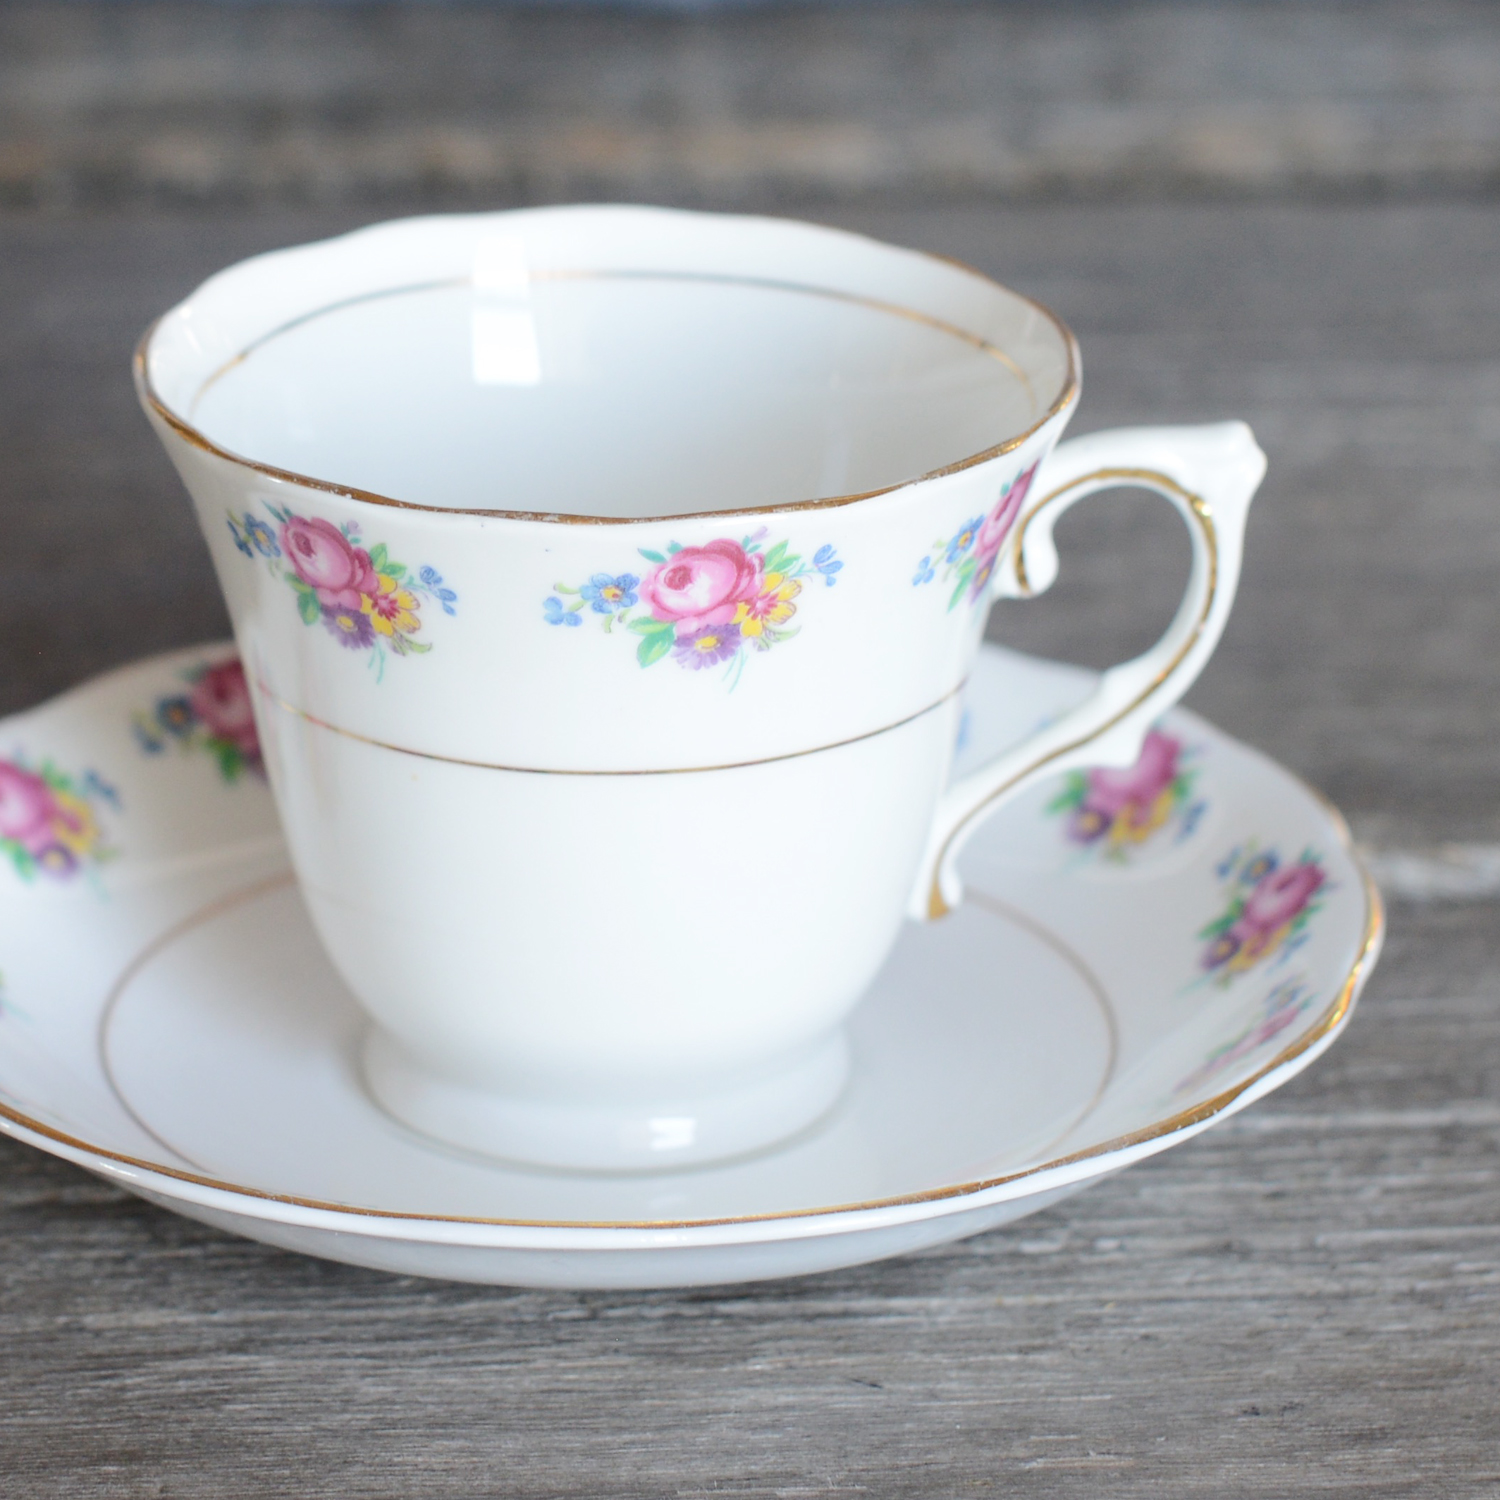 hailstone tea cup and saucer